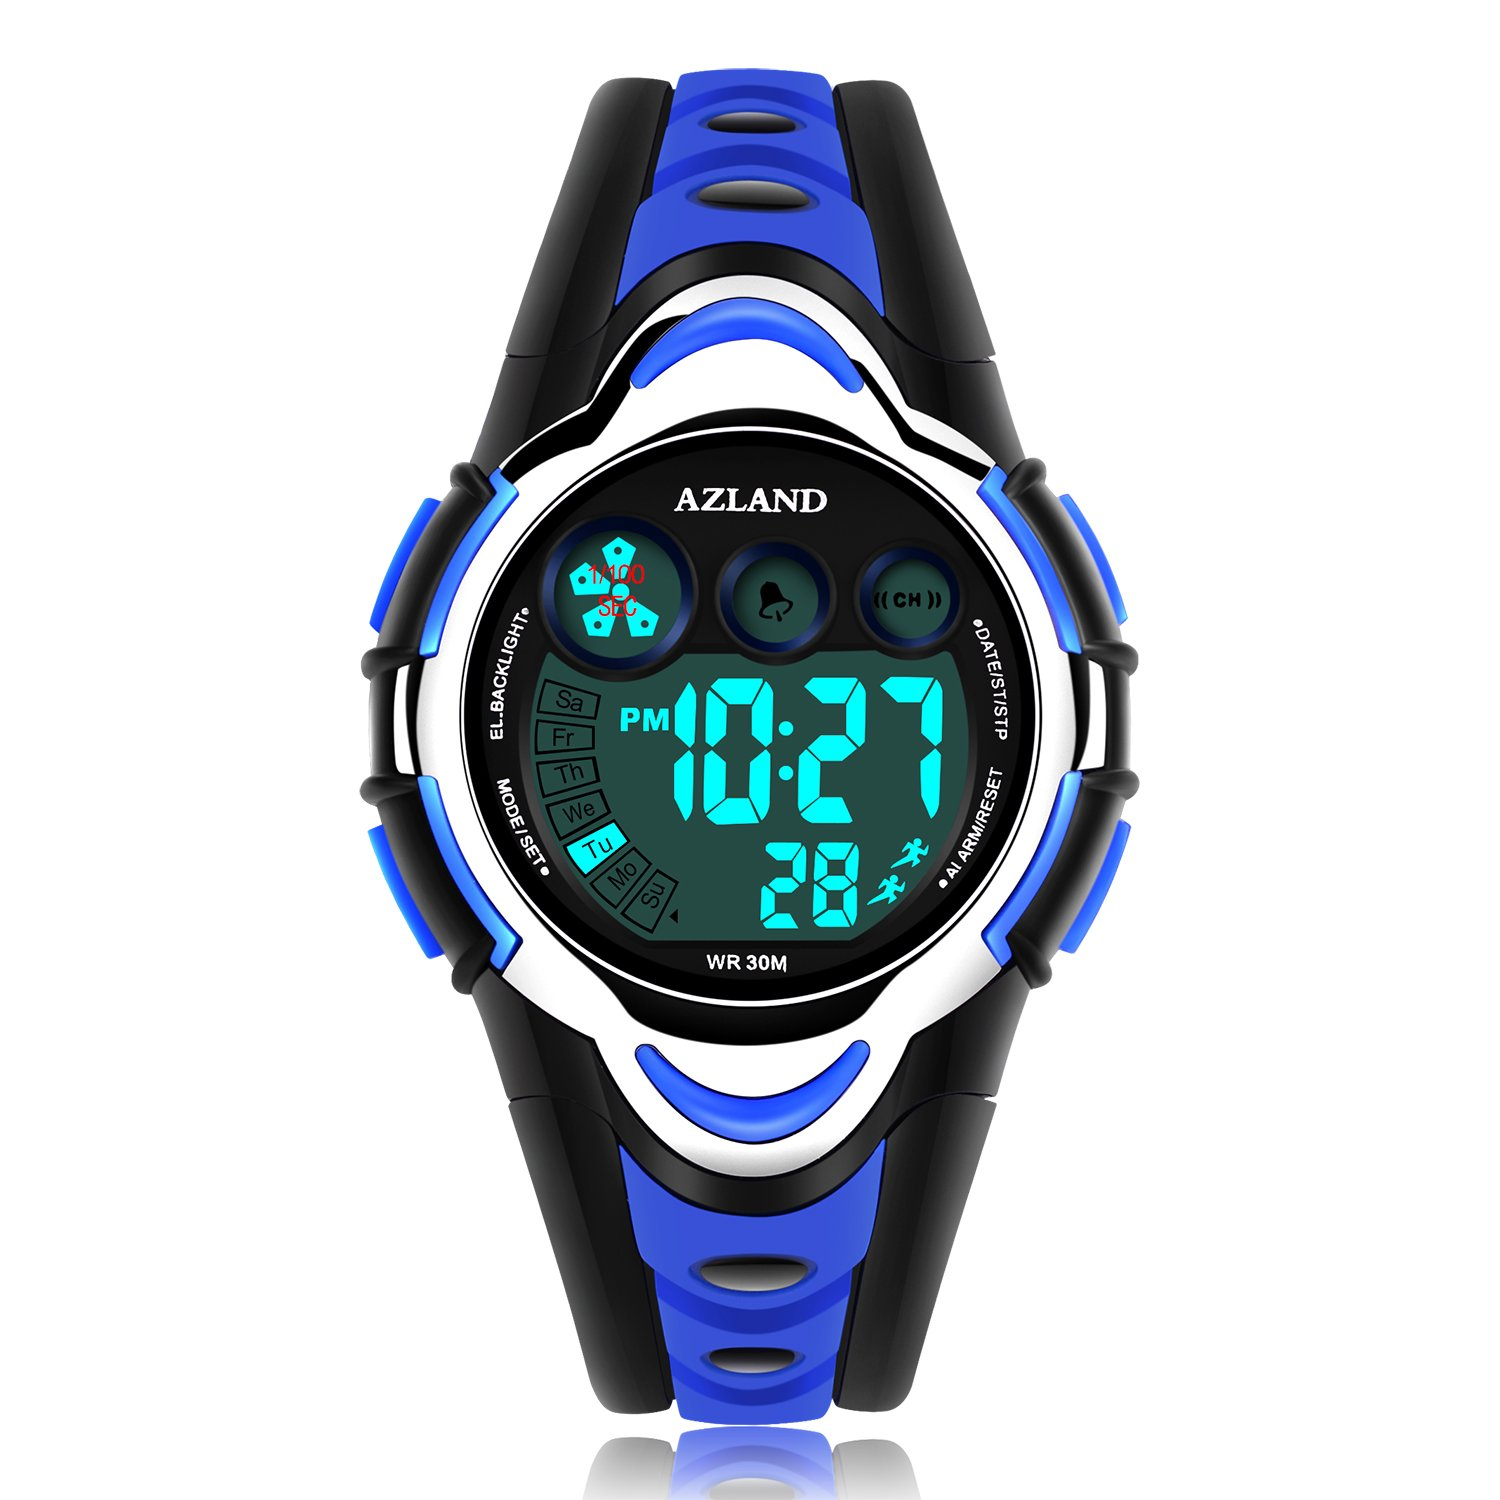 AZLAND Waterproof Swimming Led Digital Sports Watches for Children Kids Girls Boys,Rubber Strap,Blue by AZLAND (Image #1)